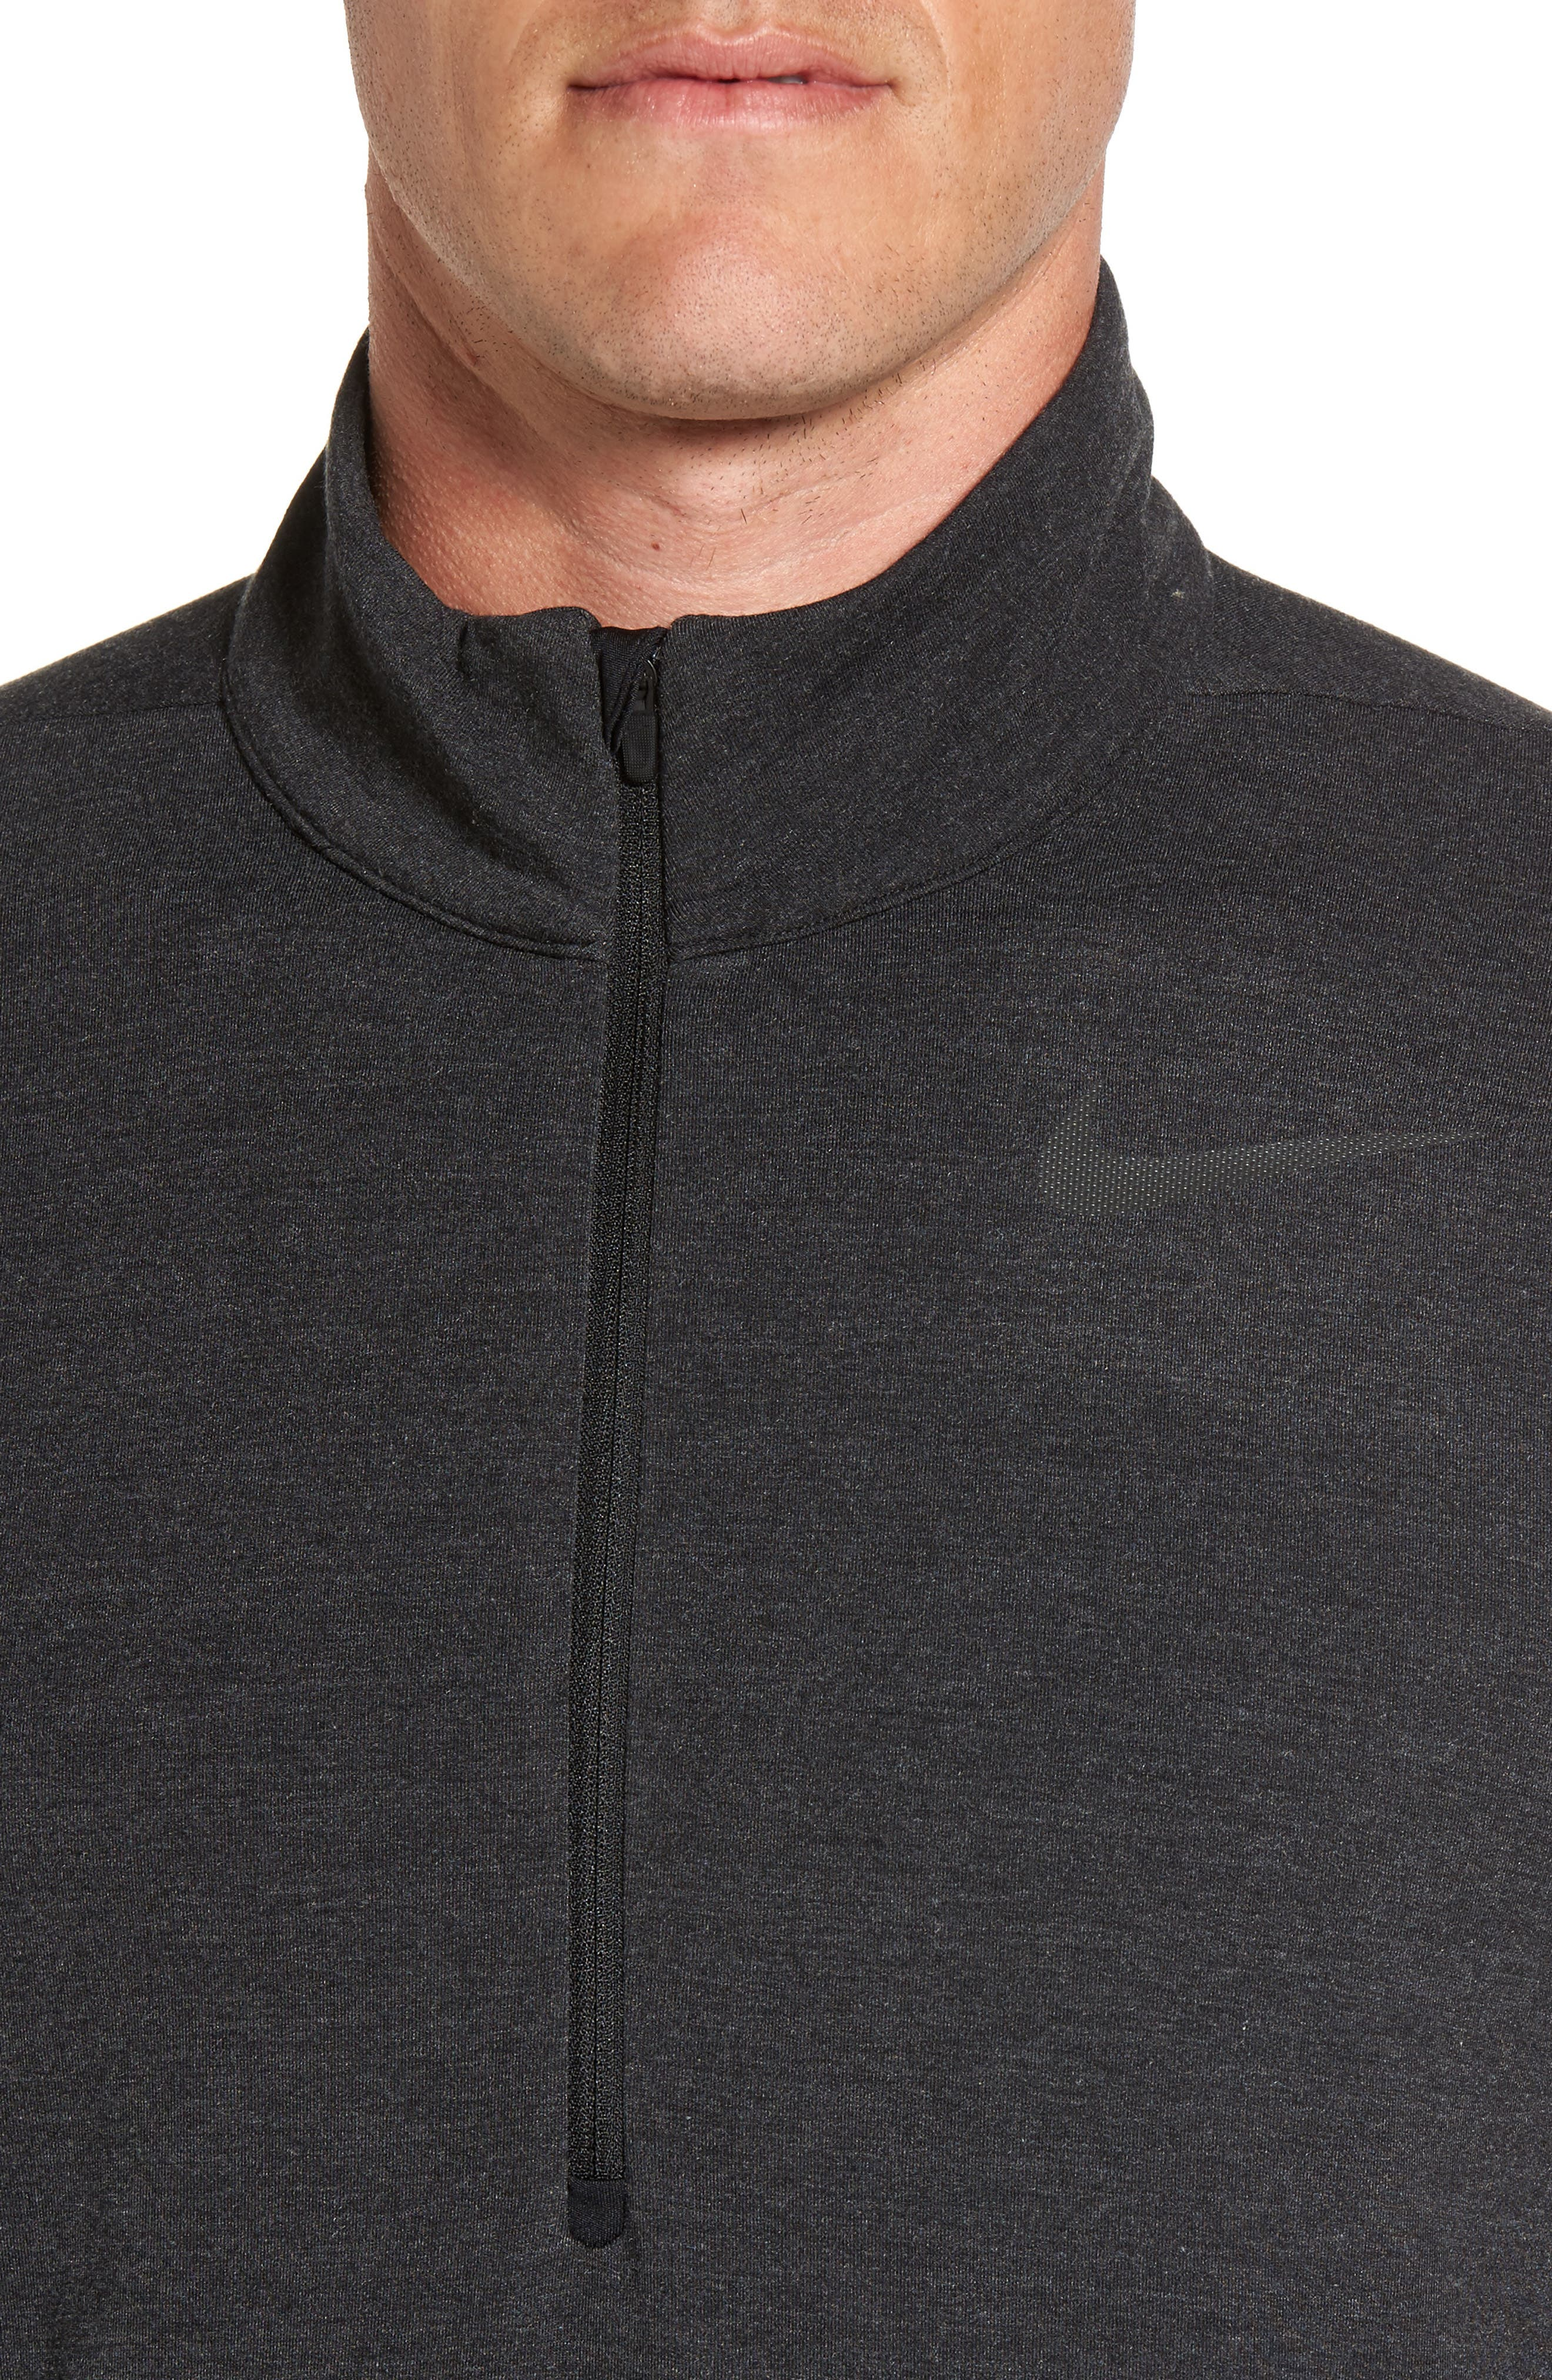 Dry Training Quarter Zip Pullover,                             Alternate thumbnail 4, color,                             010